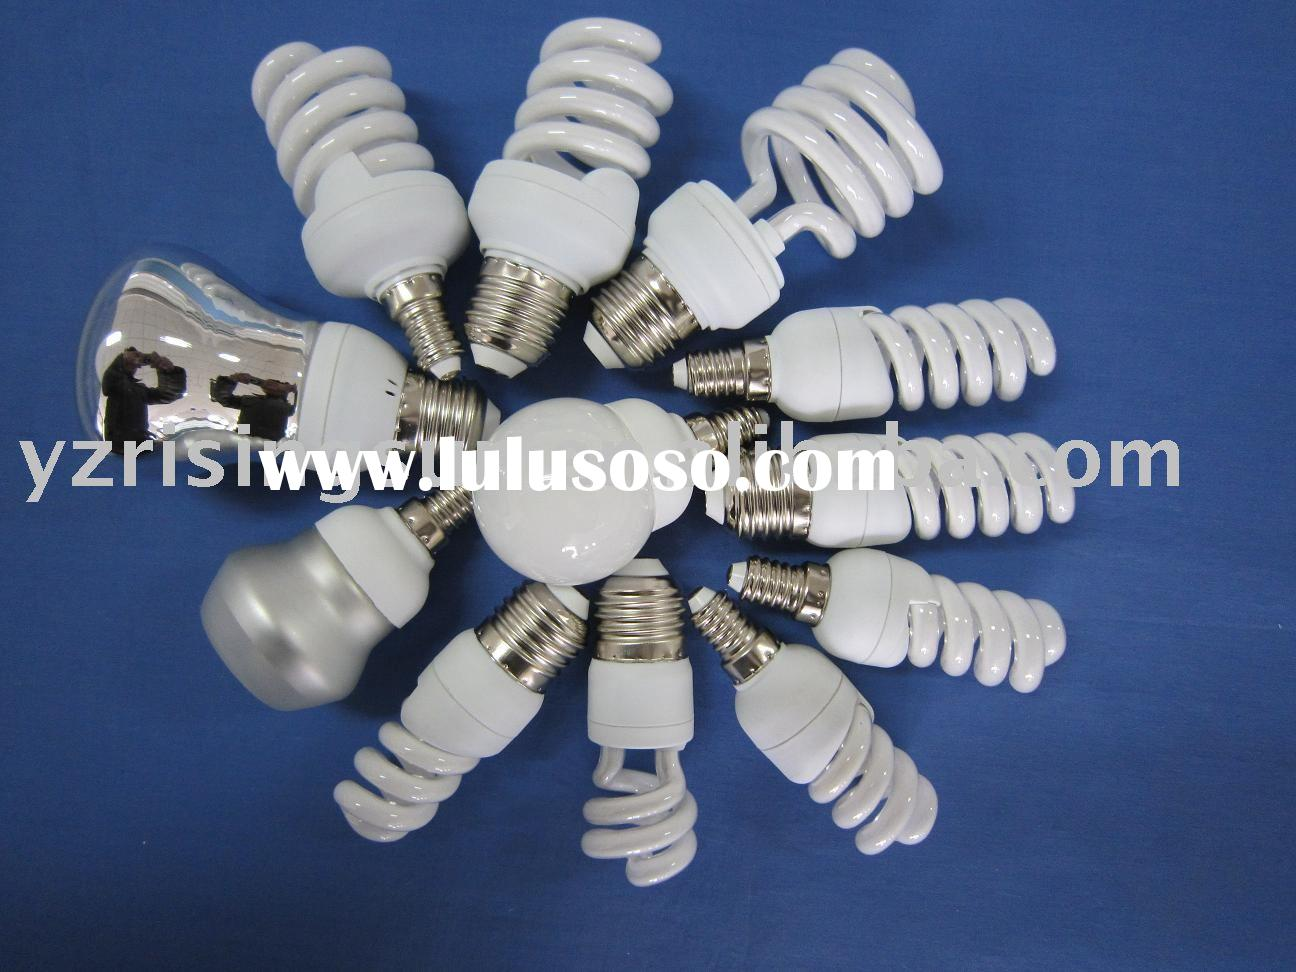 Energy saving lamp / Compact fluorescent bulb / energy saver